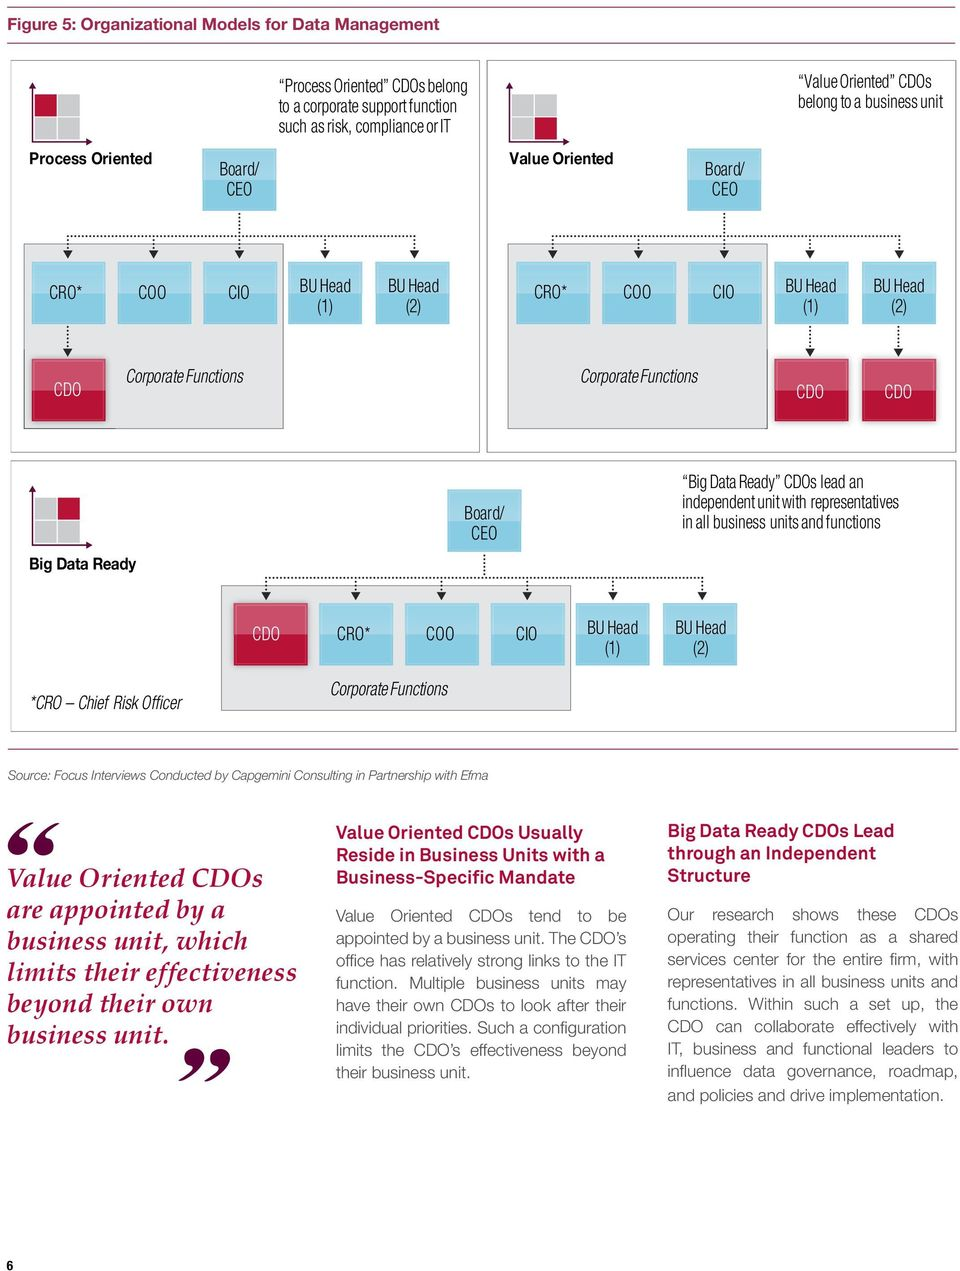 Big Data Ready CDOs lead an independent unit with representatives in all business units and functions CDO CRO* COO CIO BU Head (1) BU Head (2) *CRO Chief Risk Officer Corporate Functions Source: